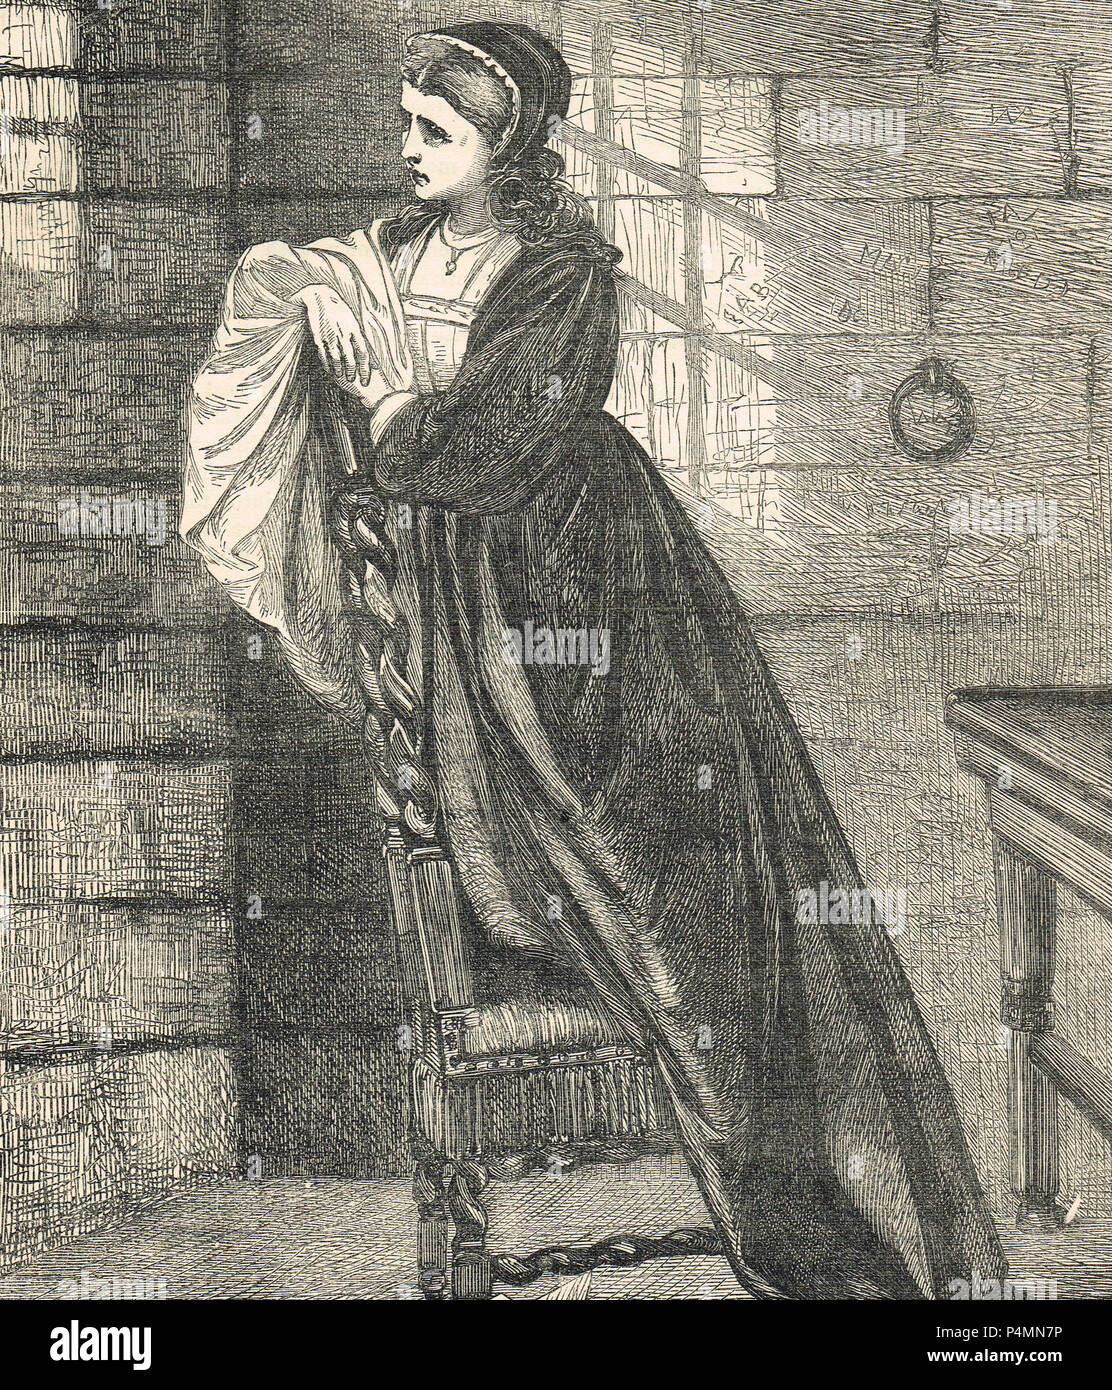 Lady Jane Grey, watching her husband pass to execution, 12 February 1554 - Stock Image